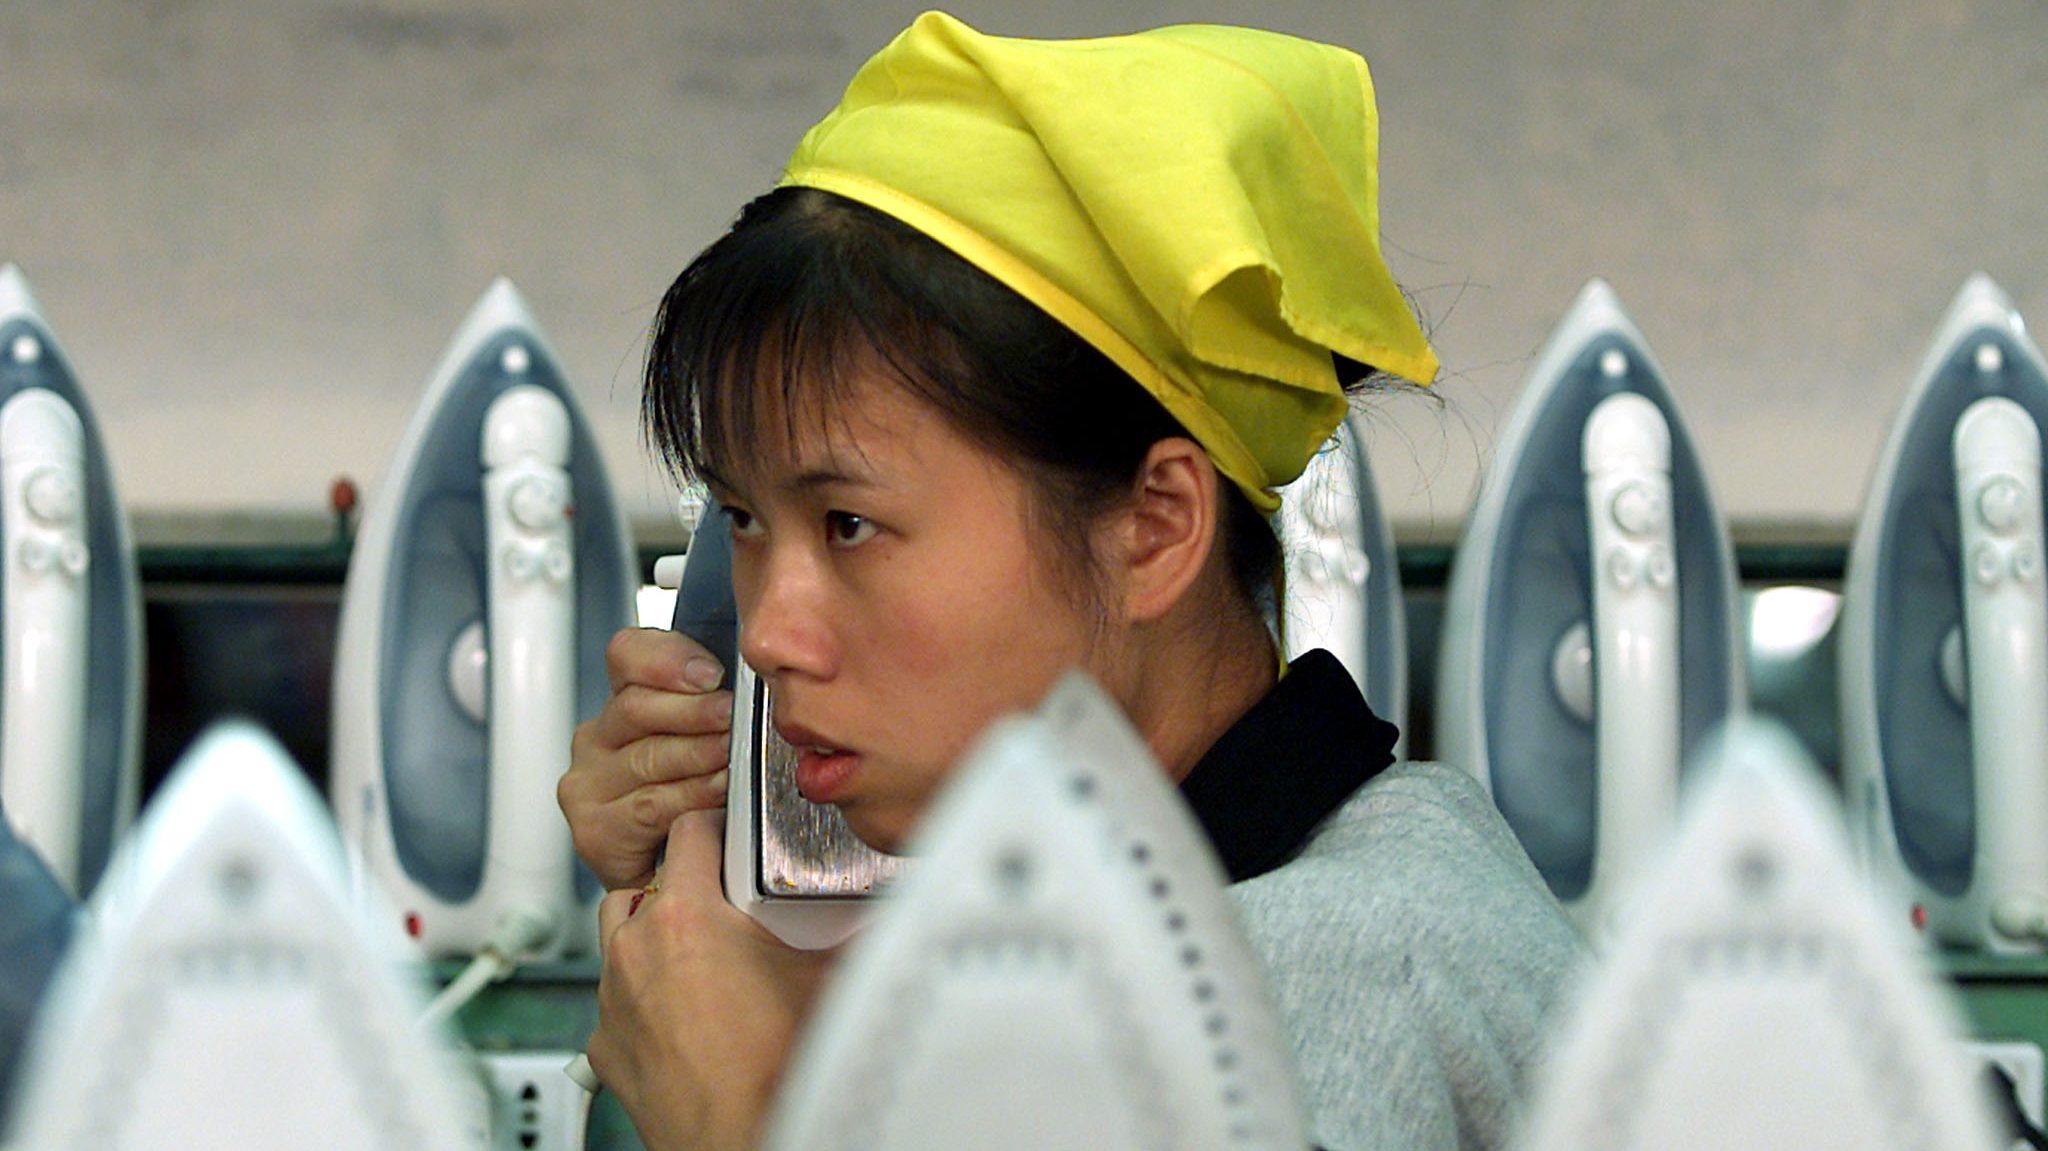 A mainland Chinese worker checks an iron between assembly lines at a household appliances factory established by Taiwanese in Xiamen, Fijian province which enjoys a close trade and investment ties with Taiwan, November 26, 2001. Most Taiwanese believe closer economic integration with the mainland is an irreversible trend.